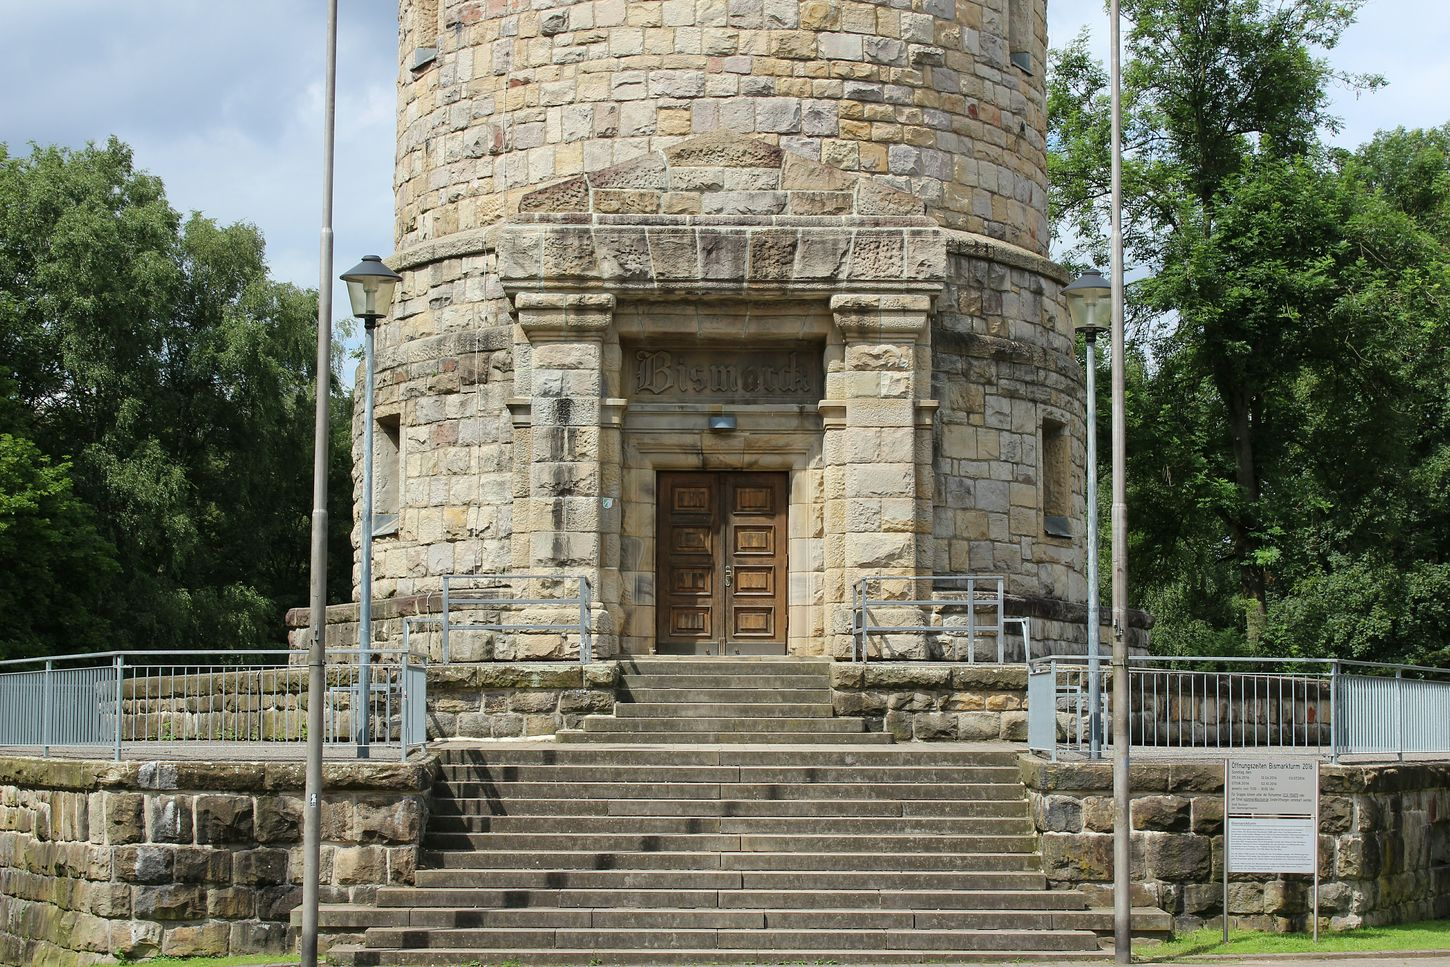 Bismarckturm Tower Bochum Stadtpark Hanging Out Reading Hanging Out Nature Fun WOW Taking Photos Check This Out